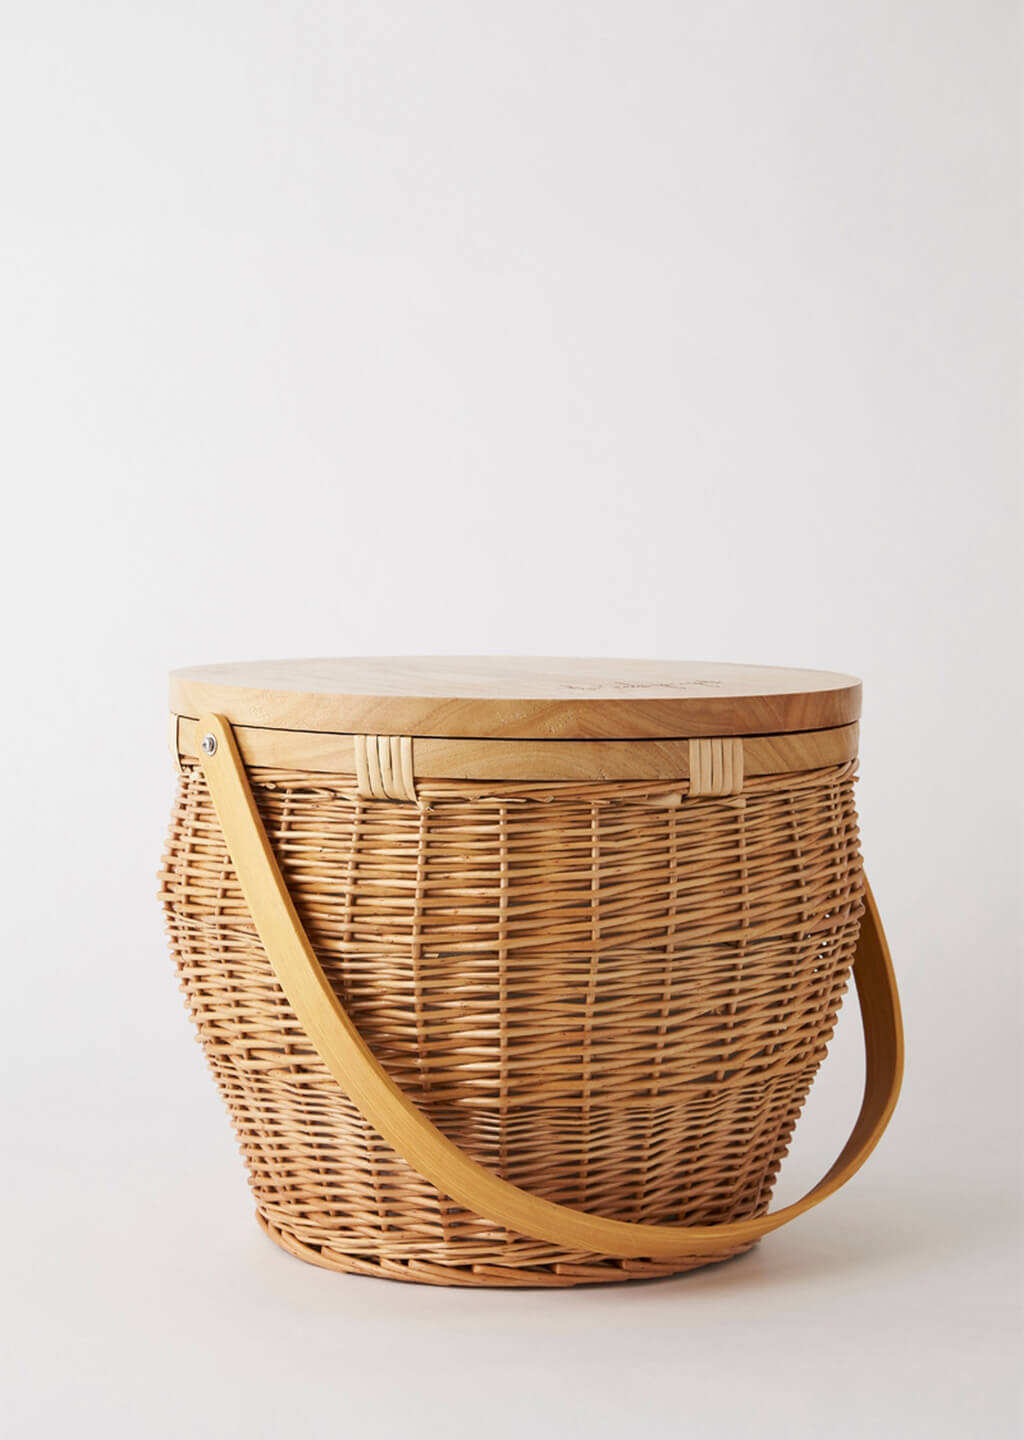 Picnic Basket Beach Picnic Accessories The Beach People The Beach People